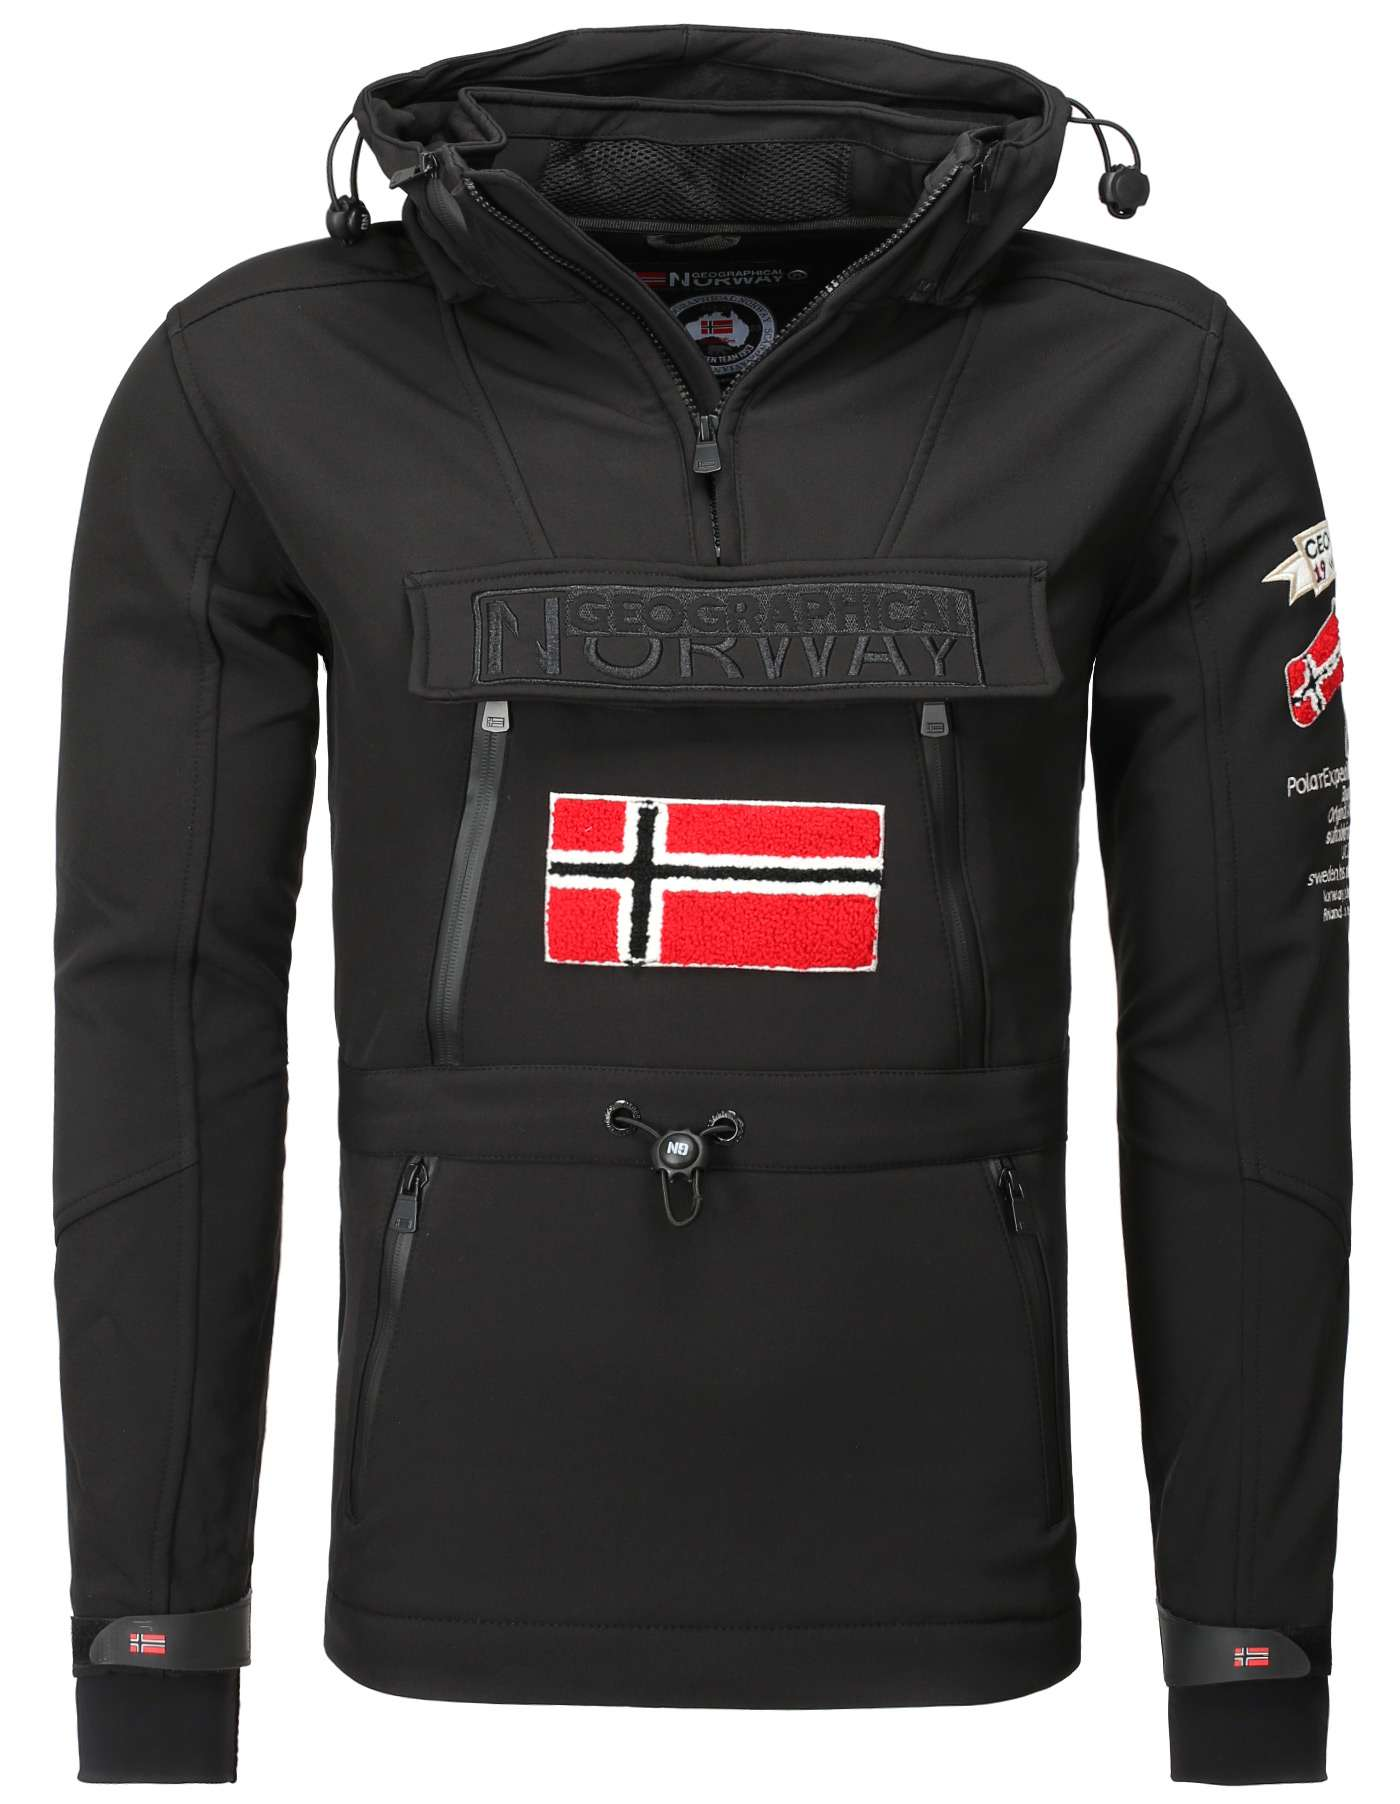 Geographical Softshell Geographical Norway Tuilding Softshell Tuilding Norway Softshell Veste Veste nOXH46Xq